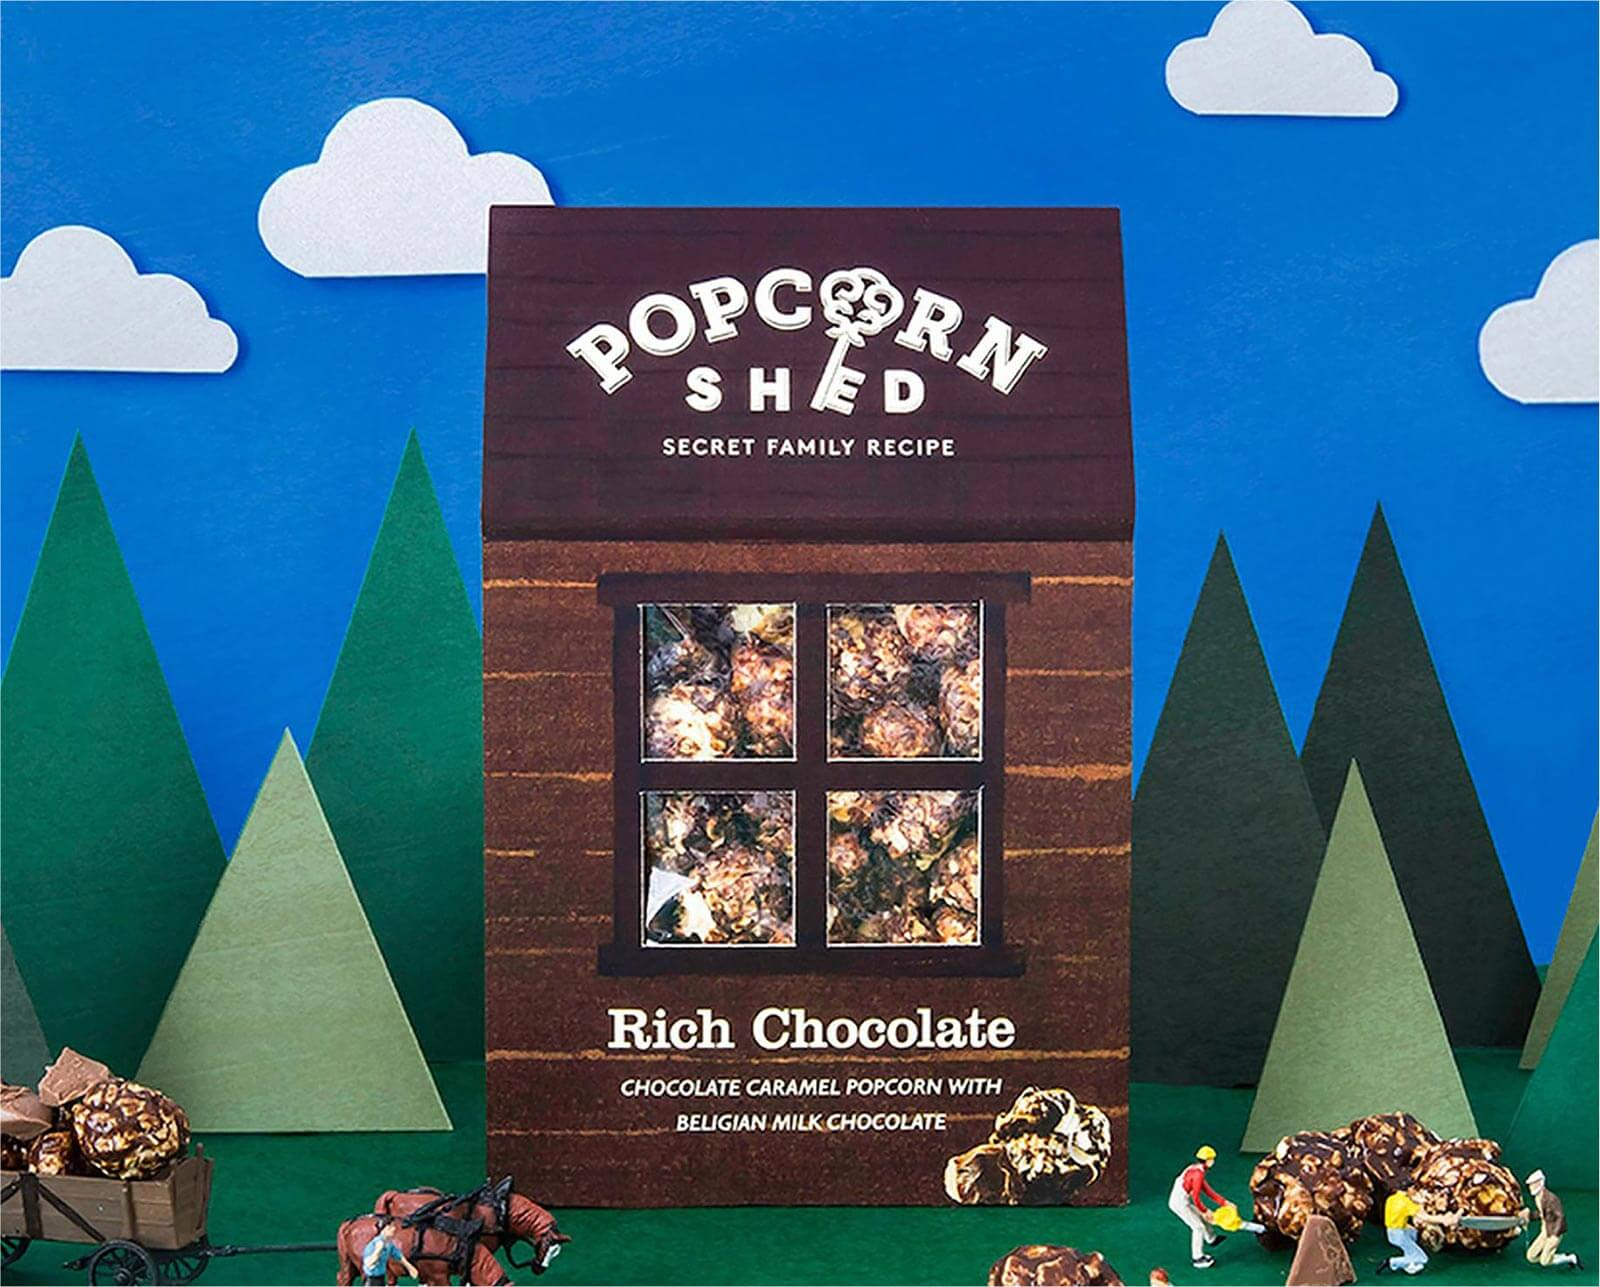 Chocolate flavour packaging design for food startup brand Popcorn Shed, designed by White Bear Studio